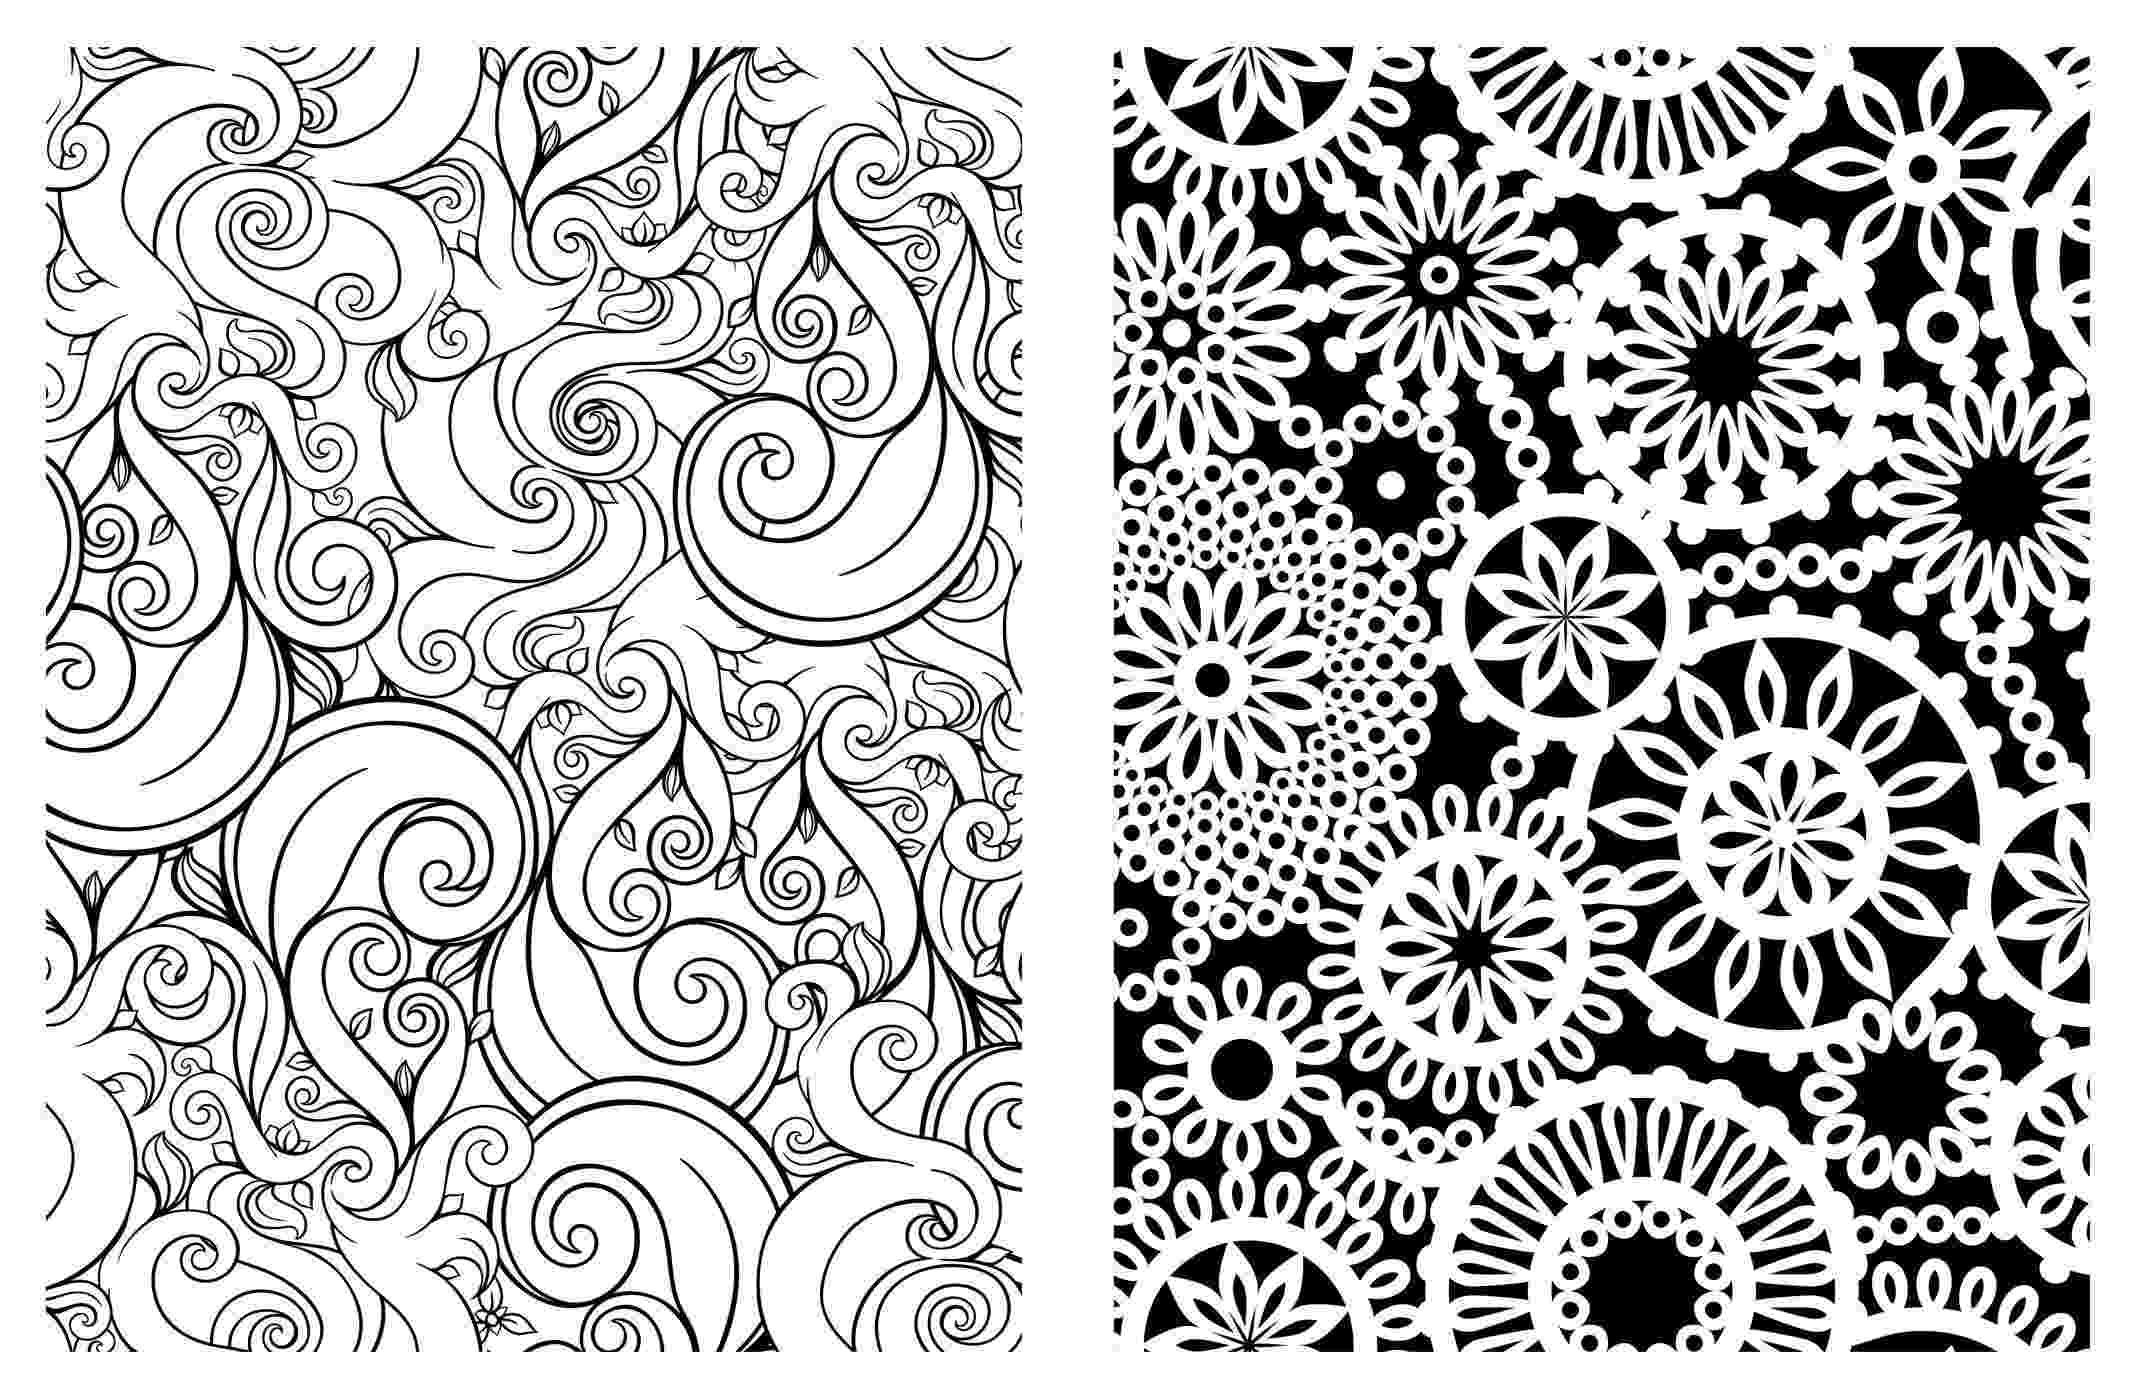 colouring therapy patterns adult coloring book art therapy volume 3 printable colouring therapy patterns